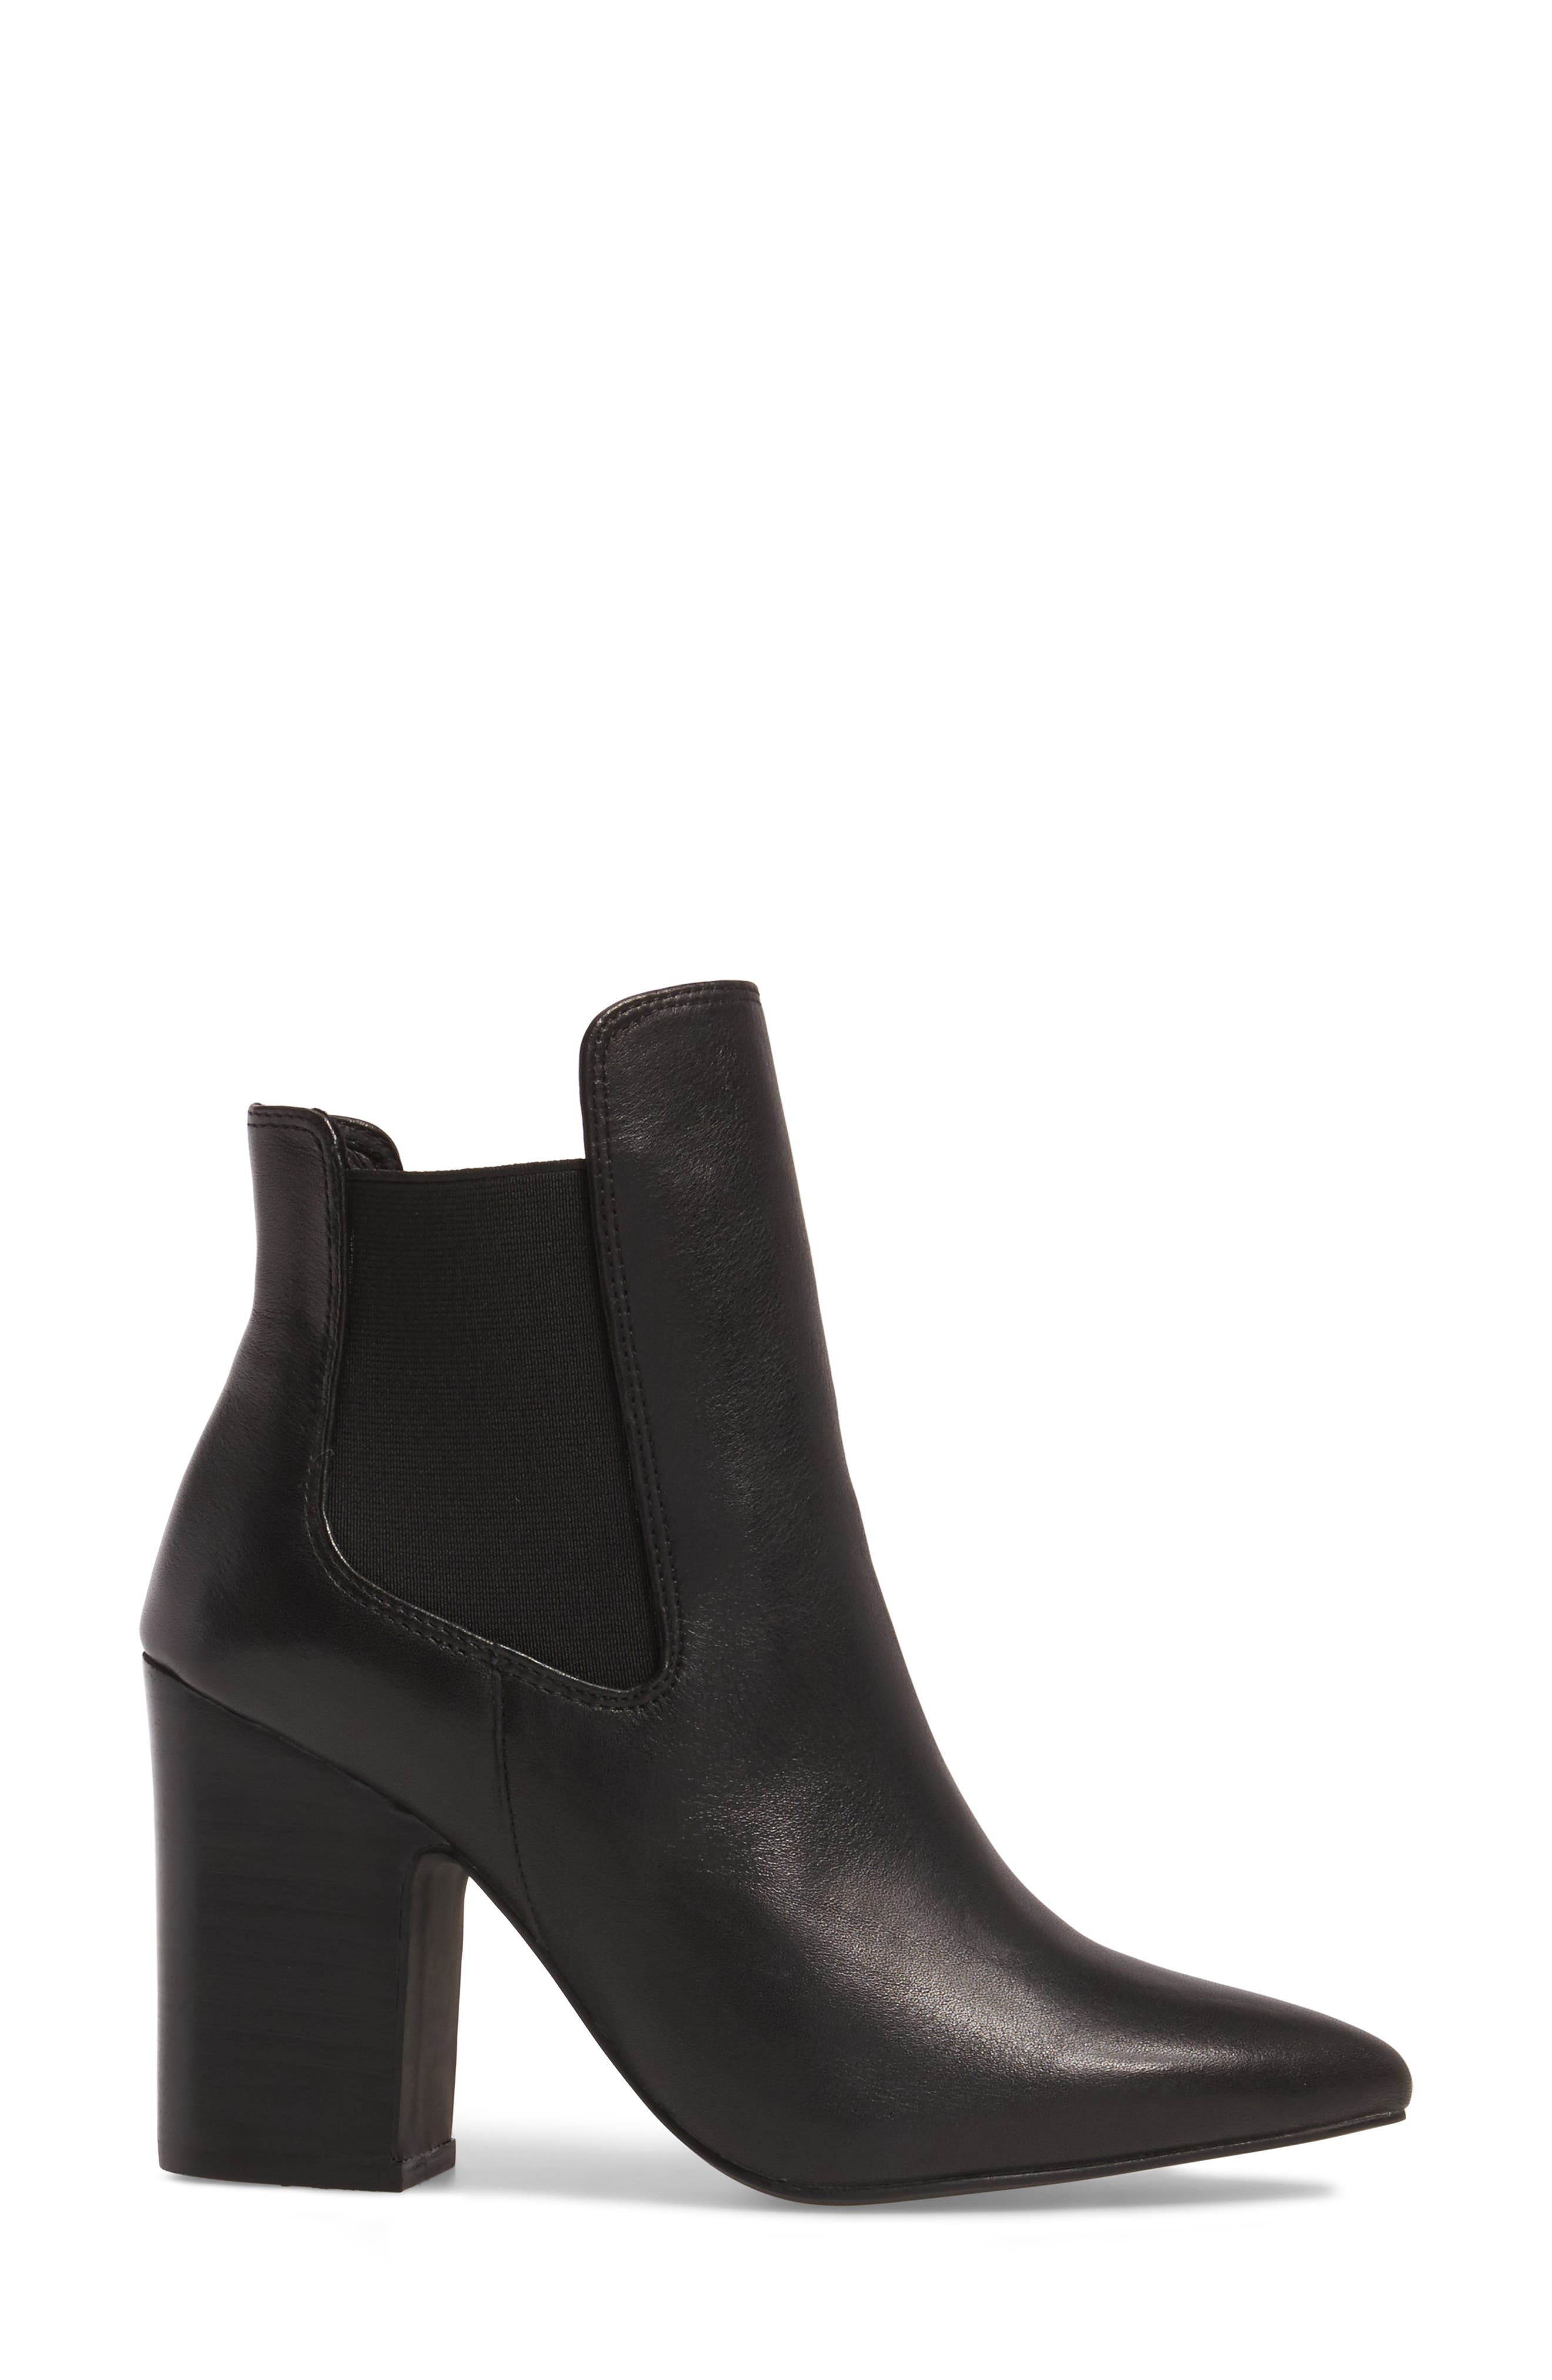 Starlight Bootie,                             Alternate thumbnail 3, color,                             Black Leather